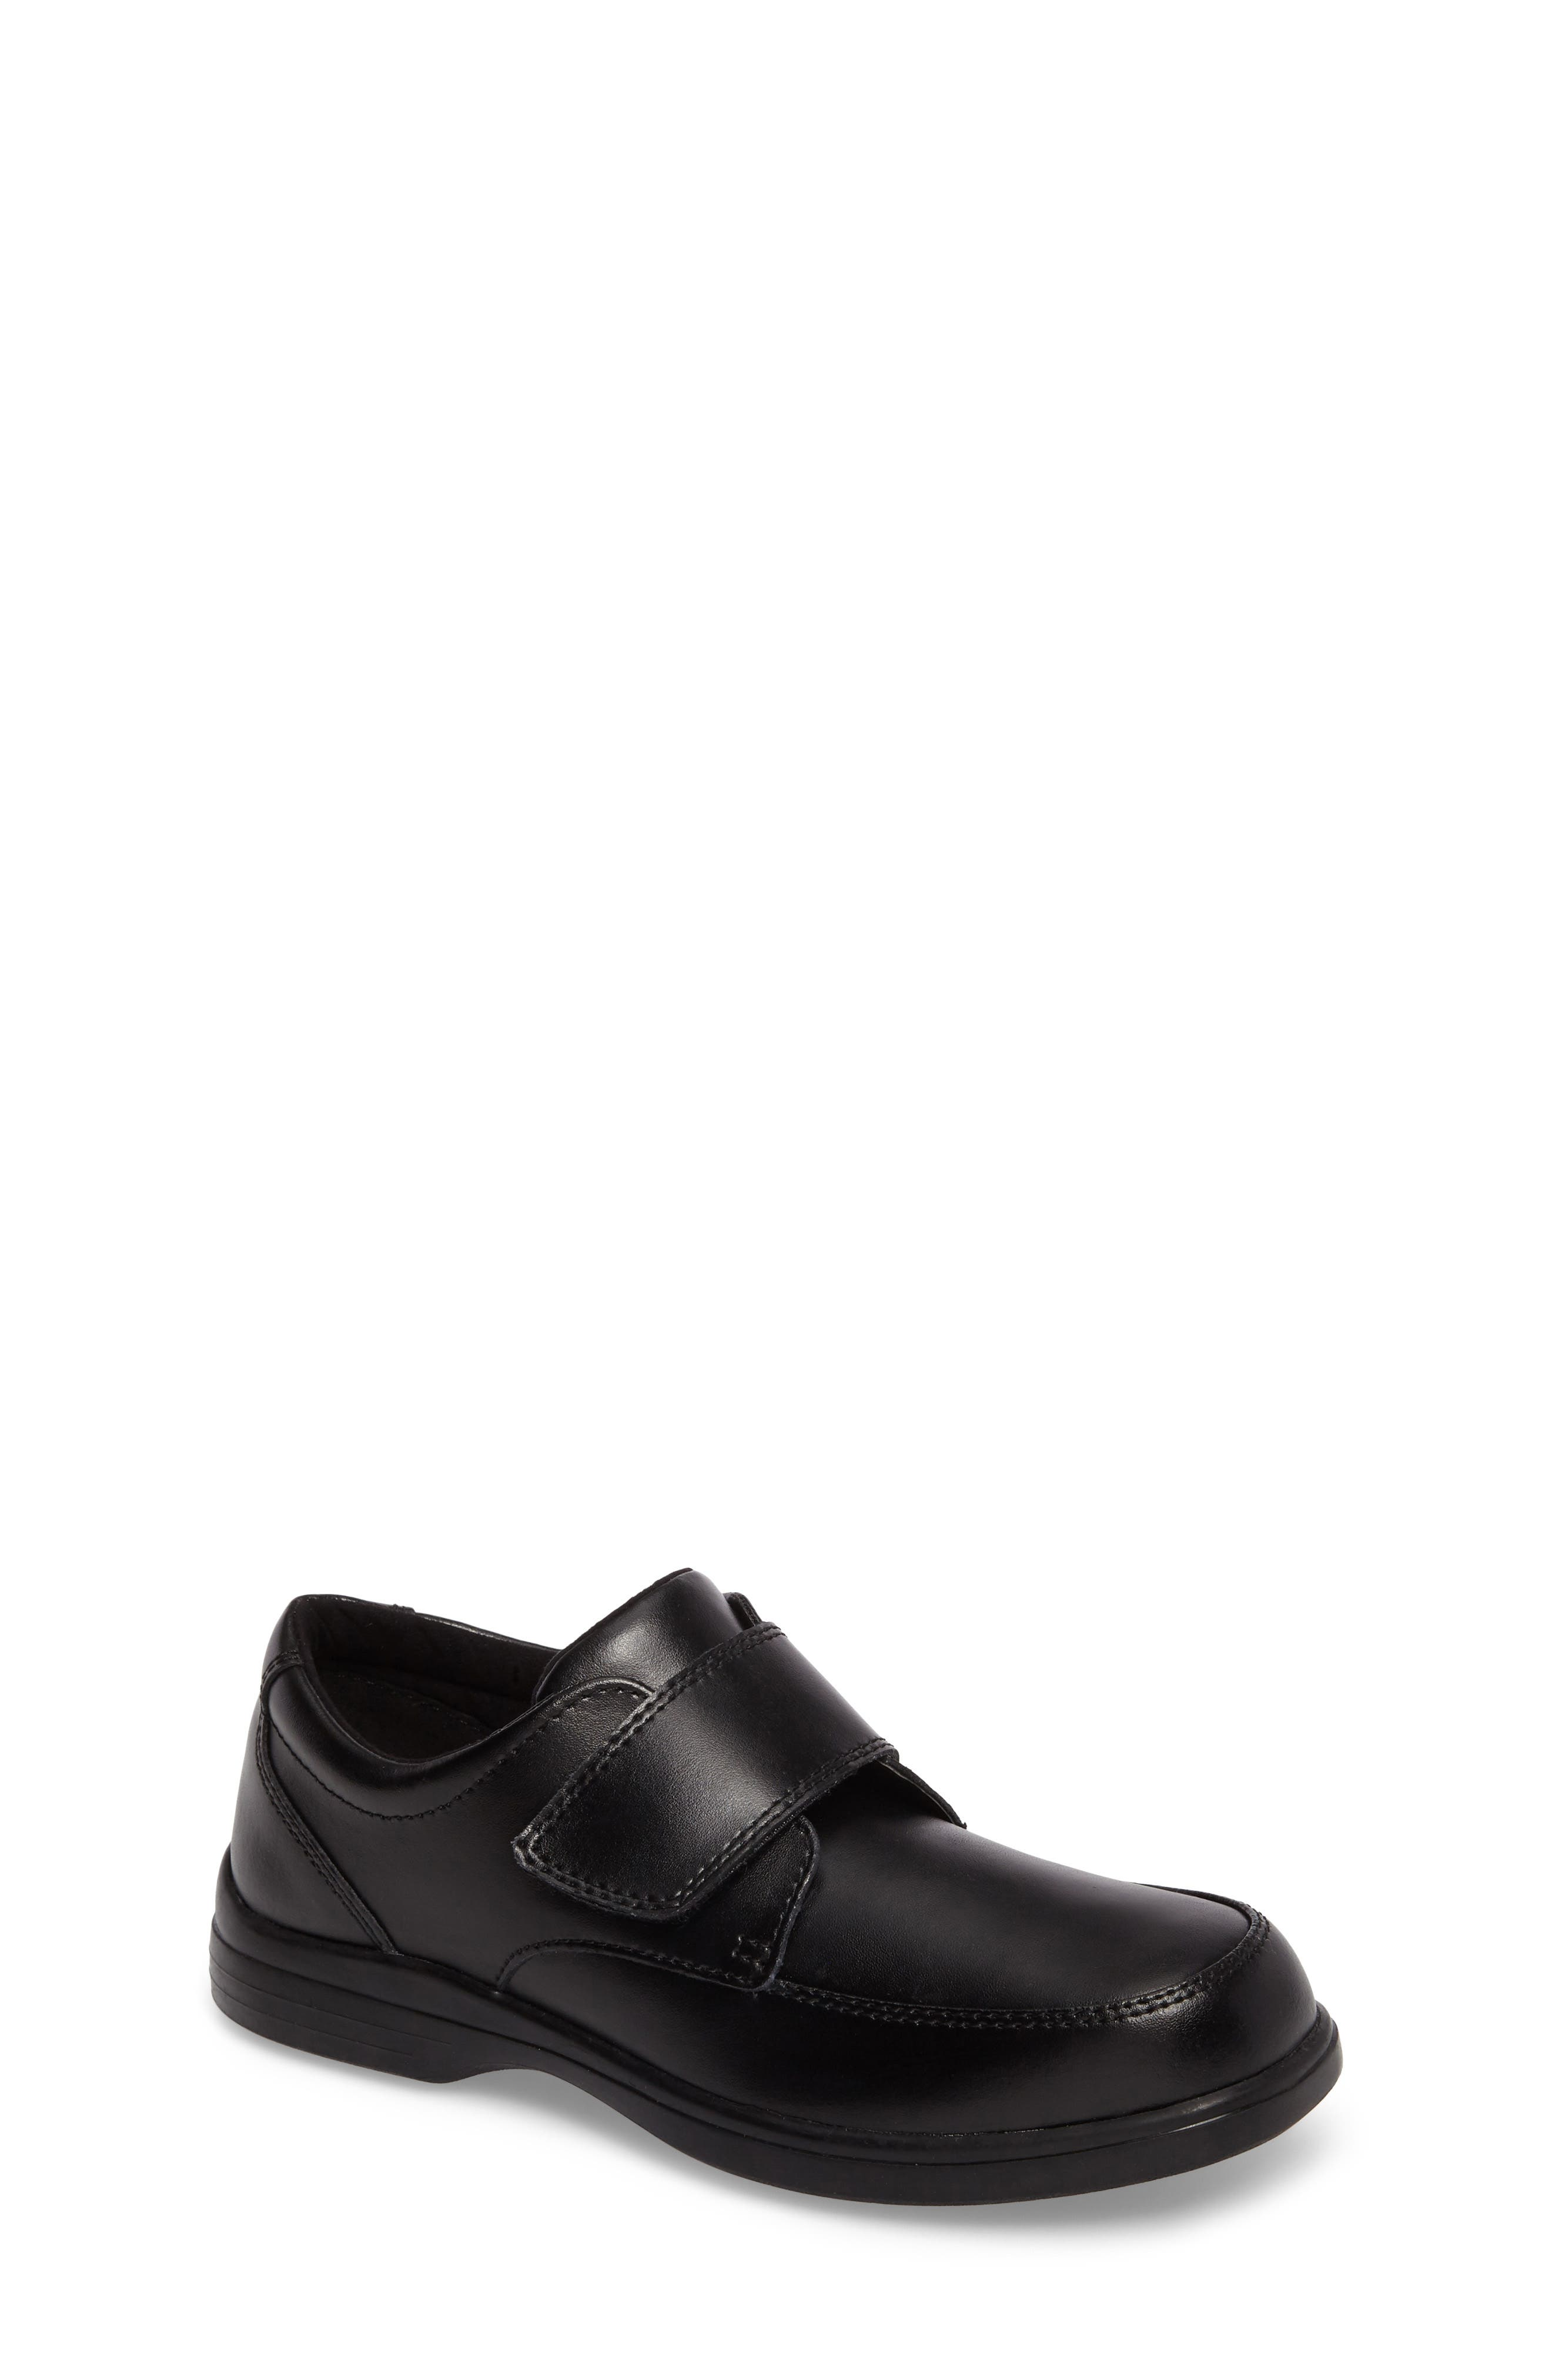 Hush Puppies Gavin Front Strap Dress Shoe,                             Main thumbnail 1, color,                             BLACK LEATHER